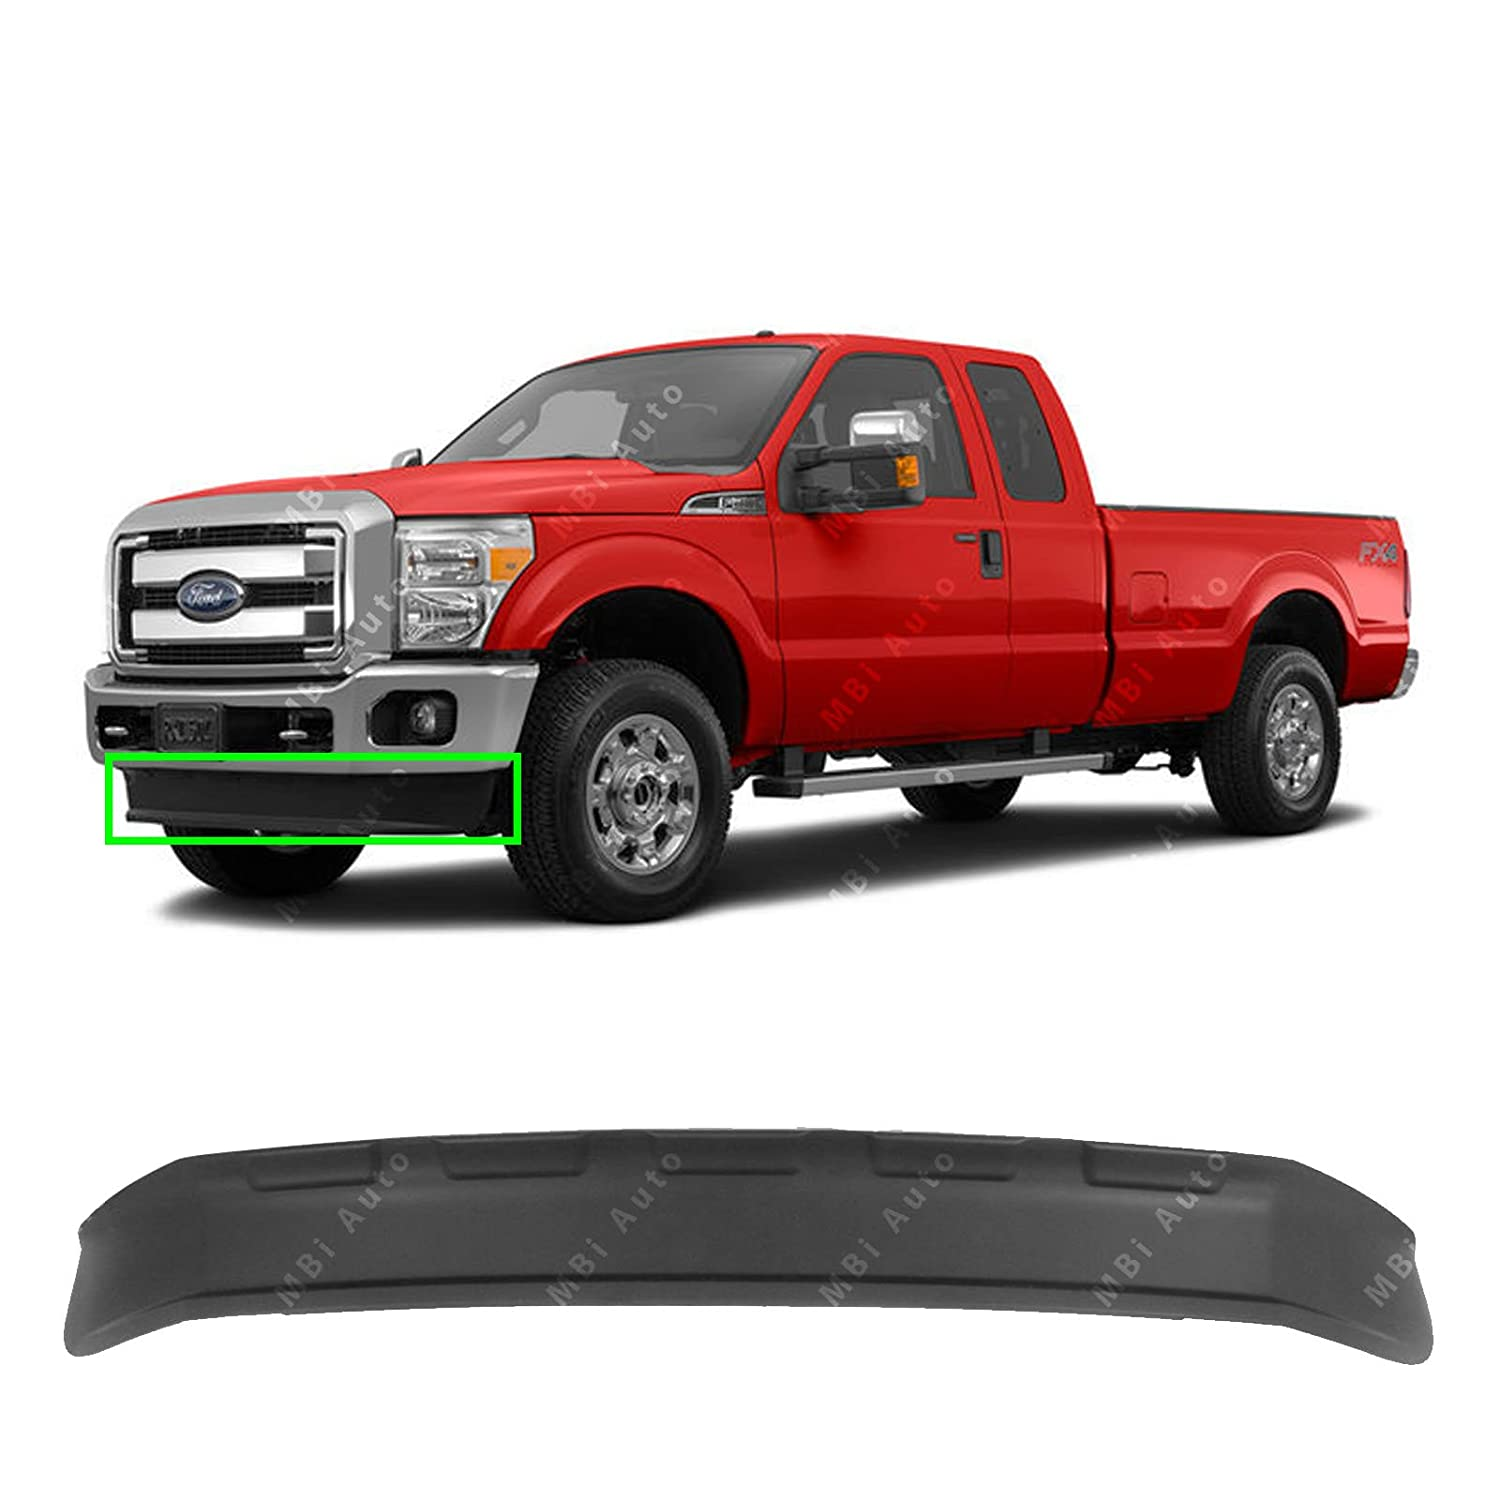 Mbi Auto Front Bumper Lower Valance Air Deflector For 1948 Ford Panel Truck 4x4 2011 2016 F250 F350 Super Duty 11 16 Fo1095242 Automotive